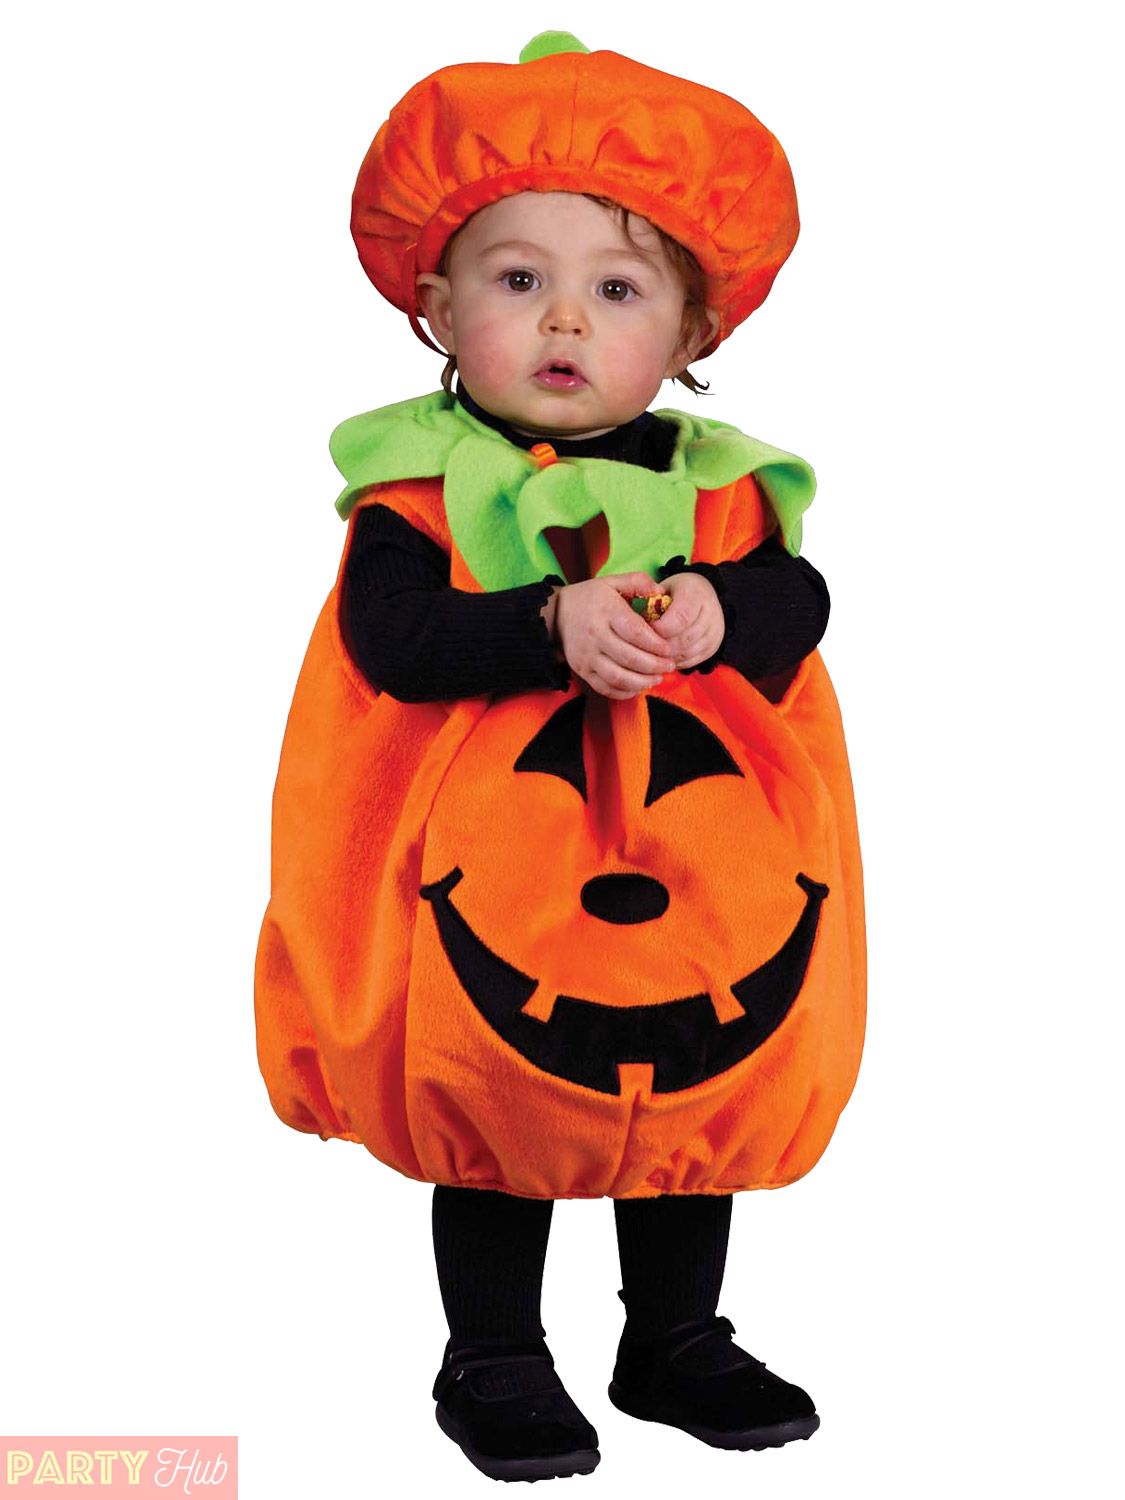 Halloween Costume for boys pictures best photo